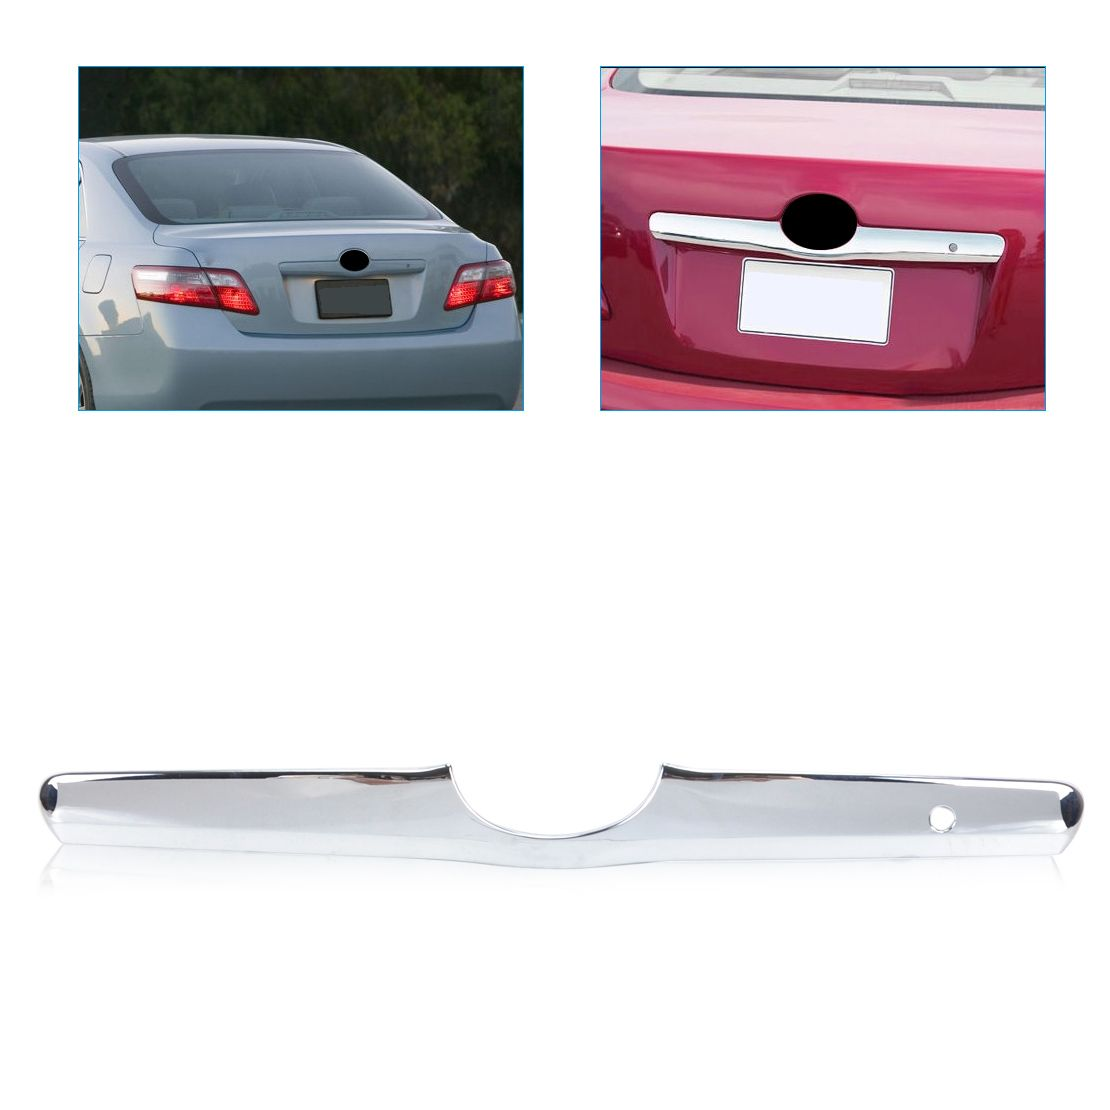 DWCX ABS Triple Chrome Tailgate Trunk Hatch Trim Bezel Cover for Toyota Camry 2006 2007 2008 2009 2010 2011